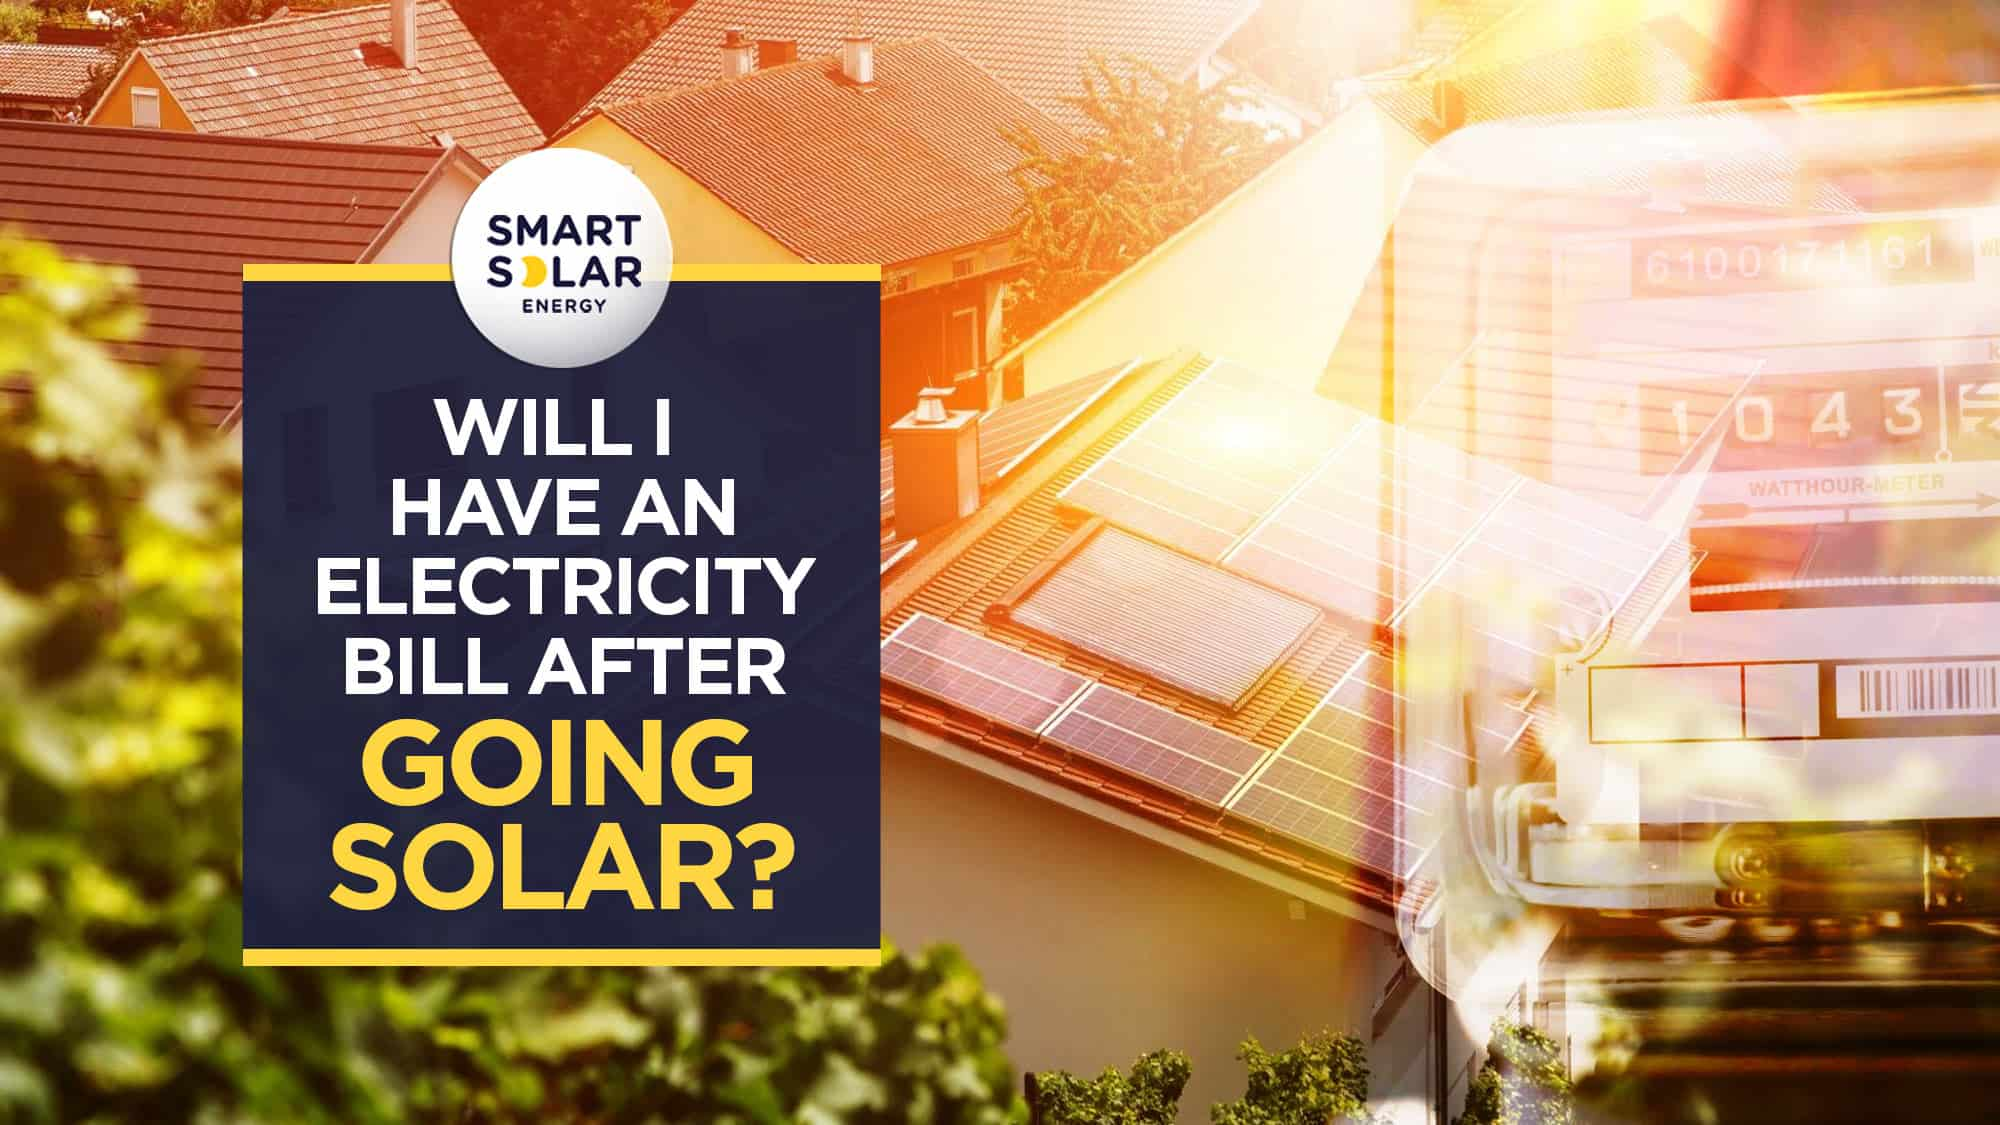 Will have an electricity bill after going solar?